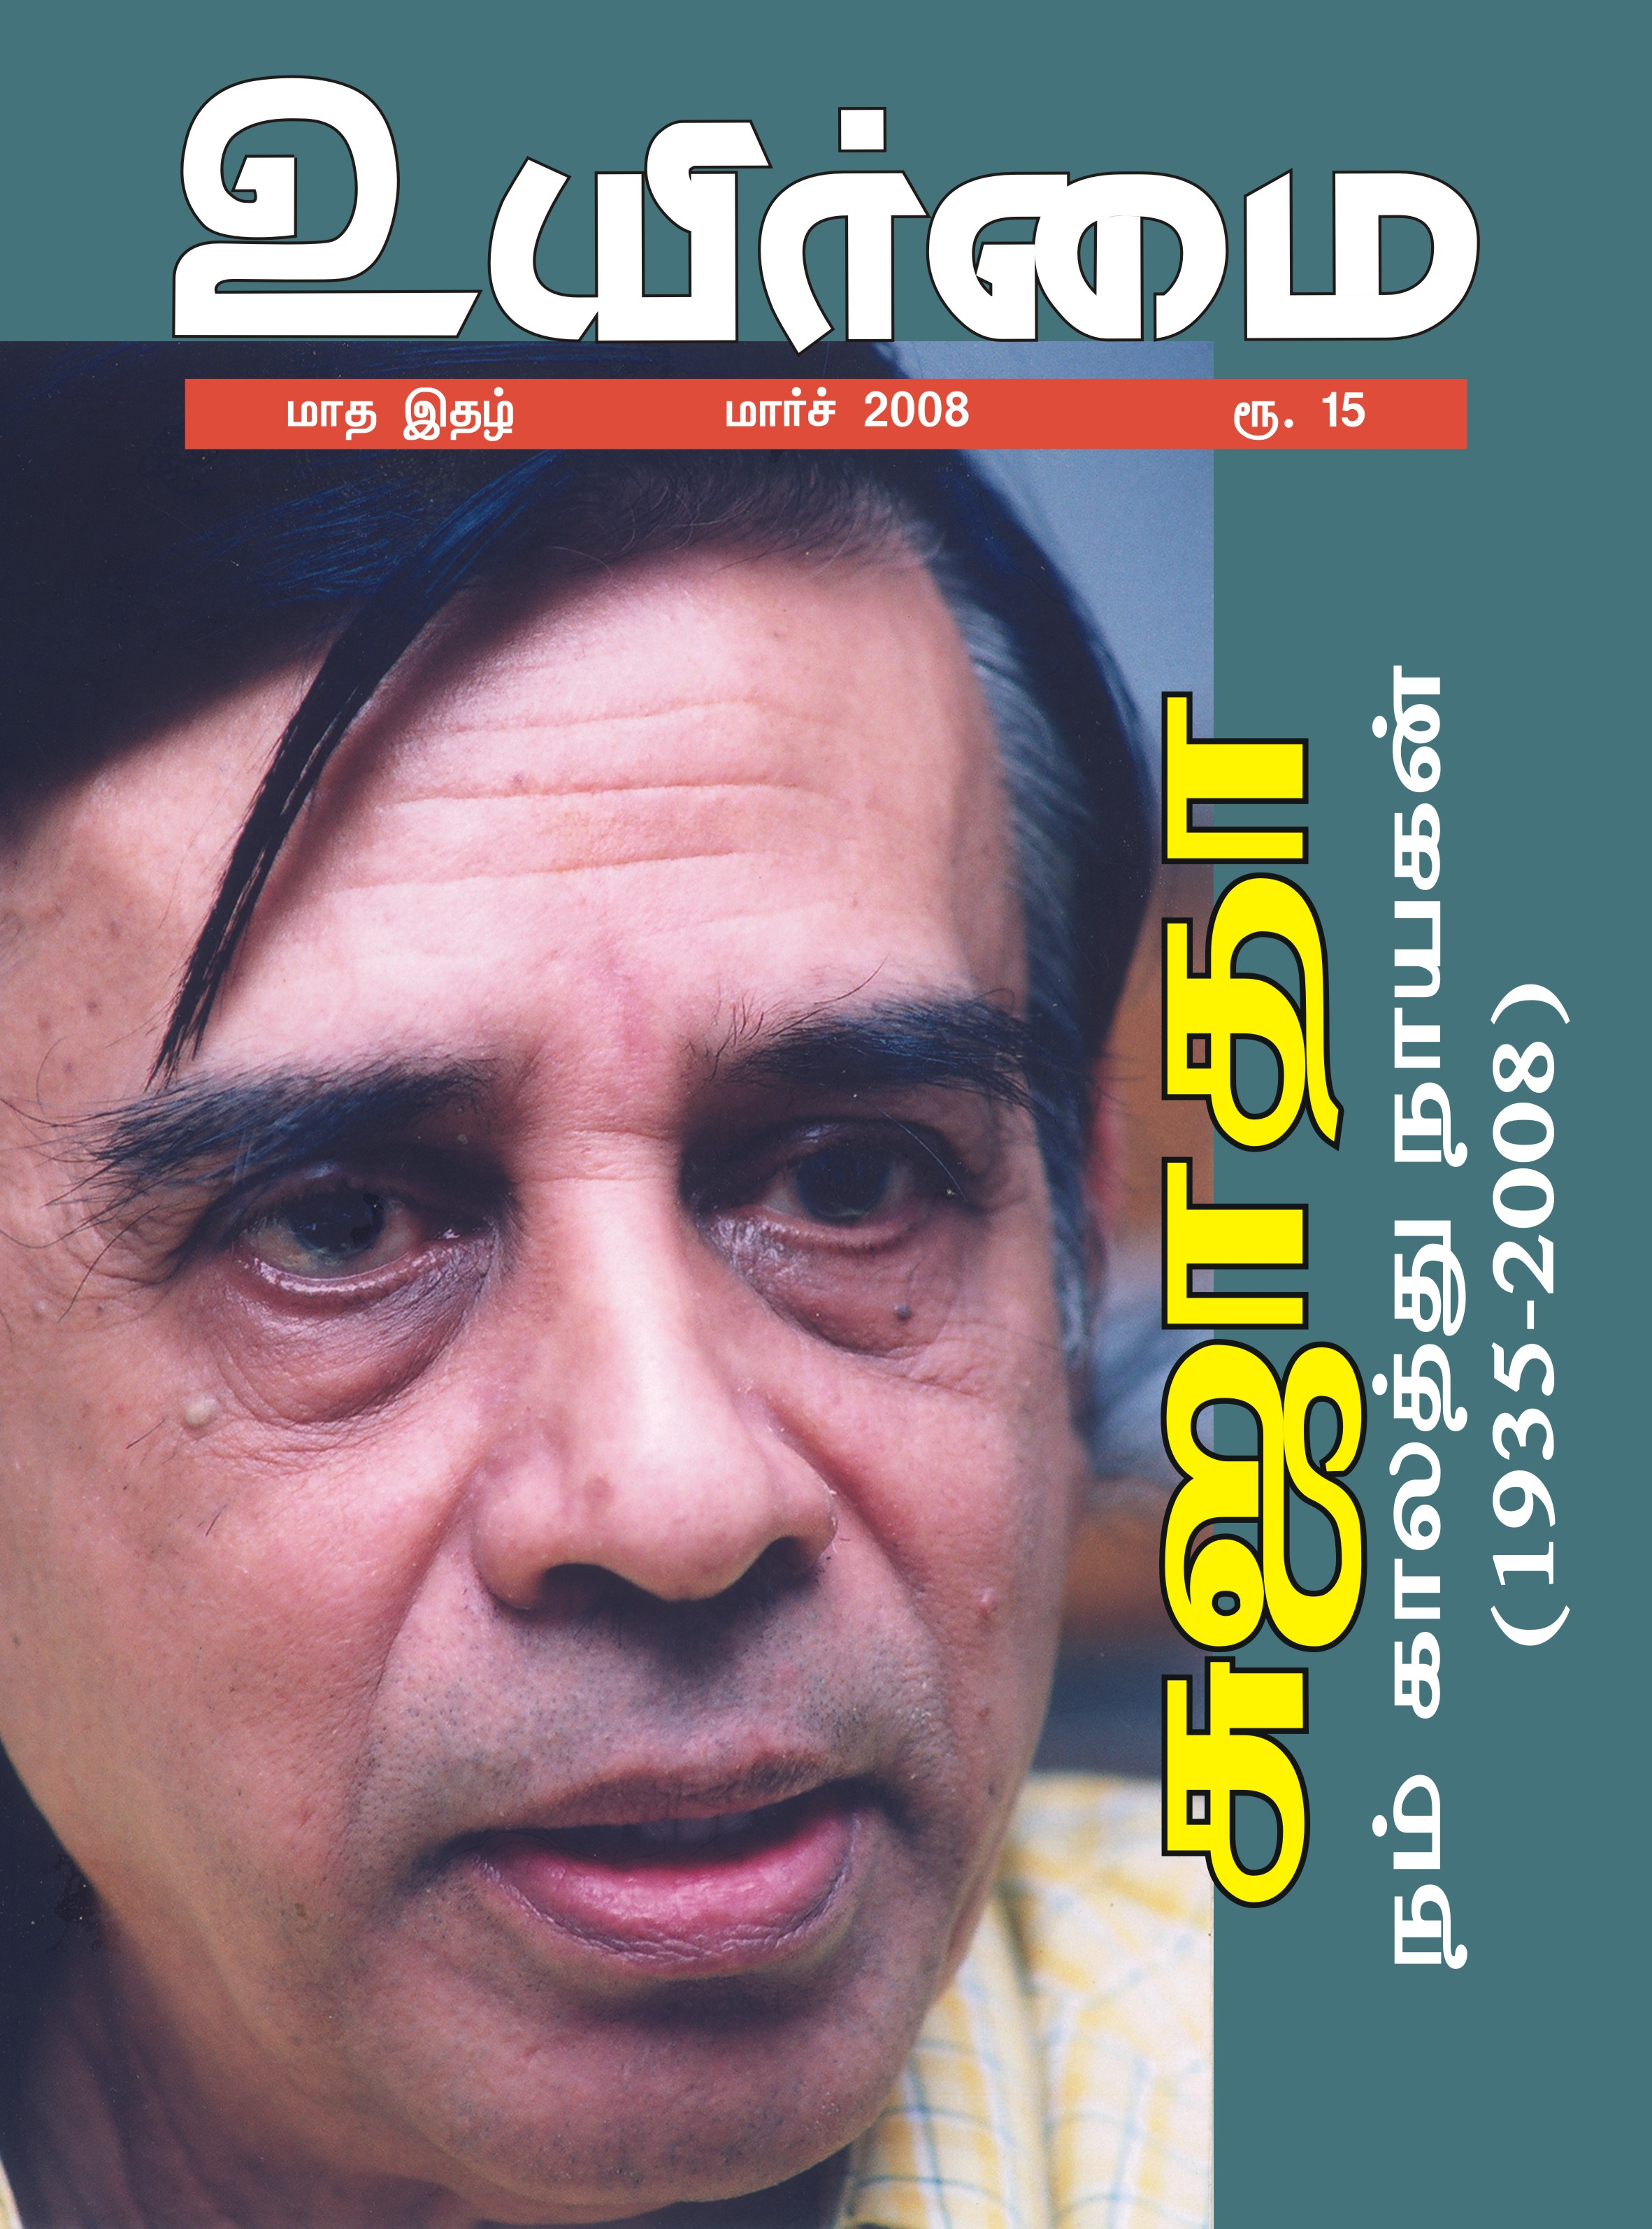 http://10hot.files.wordpress.com/2009/07/sujatha-8-writers-authors-magz-issues-uyirmmai-march-2008-front-cover.jpg